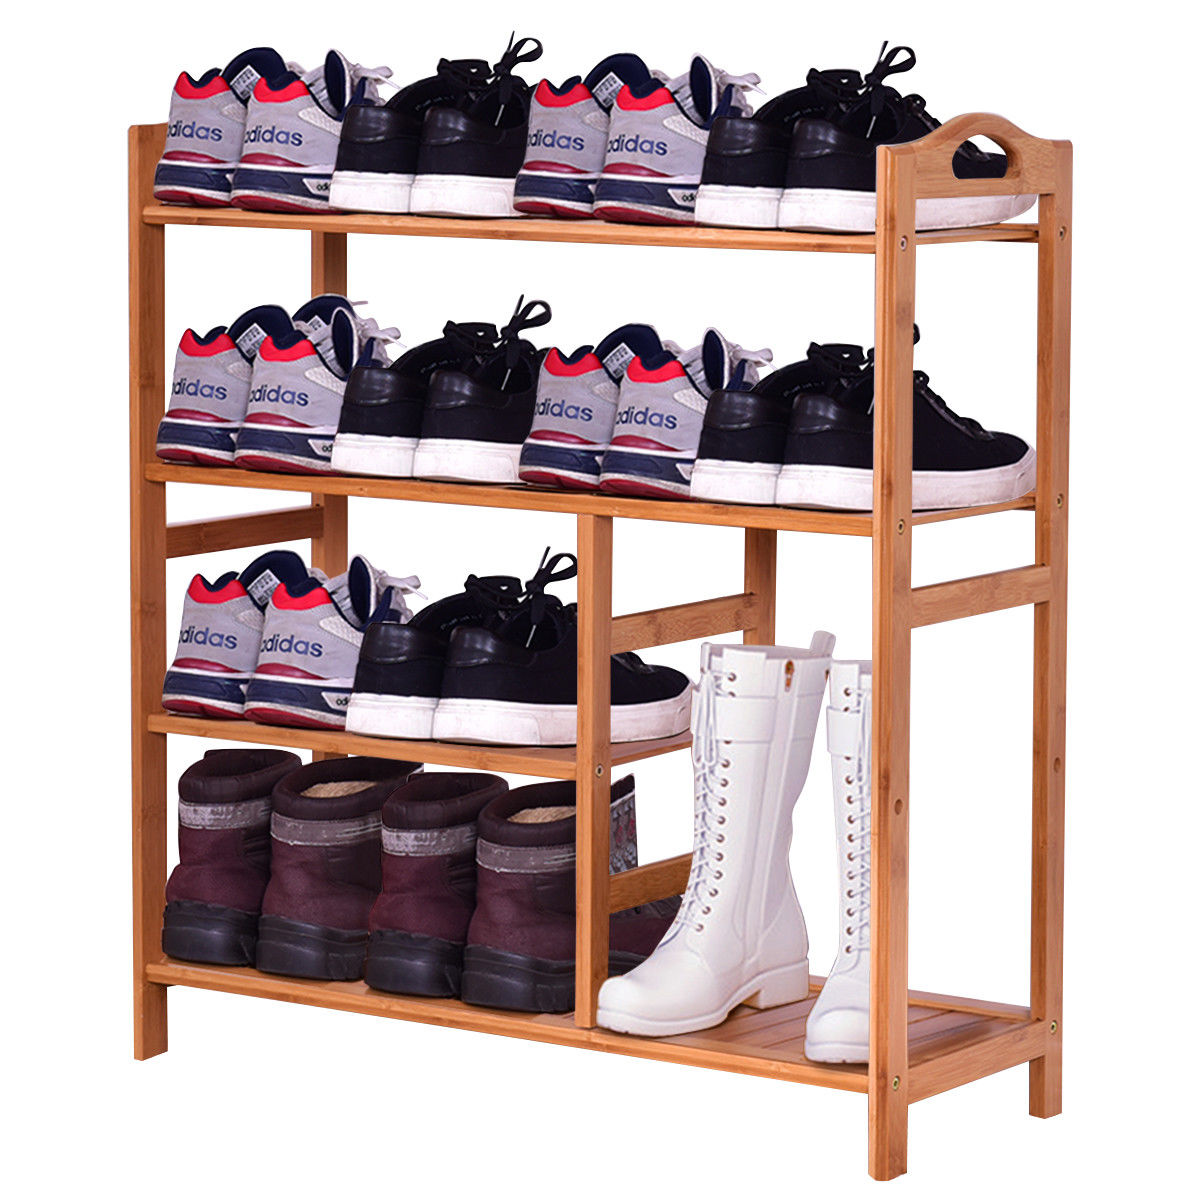 Giantex 4 Tier Multifunction Bamboo Shoe Rack Boot Tower Shelf Modern Home Shoes Storage Organizer Stand HW56488 68cm length stable 4 tier bamboo shoe shelf rack stand organizer holder storage tool exquisite home furniture